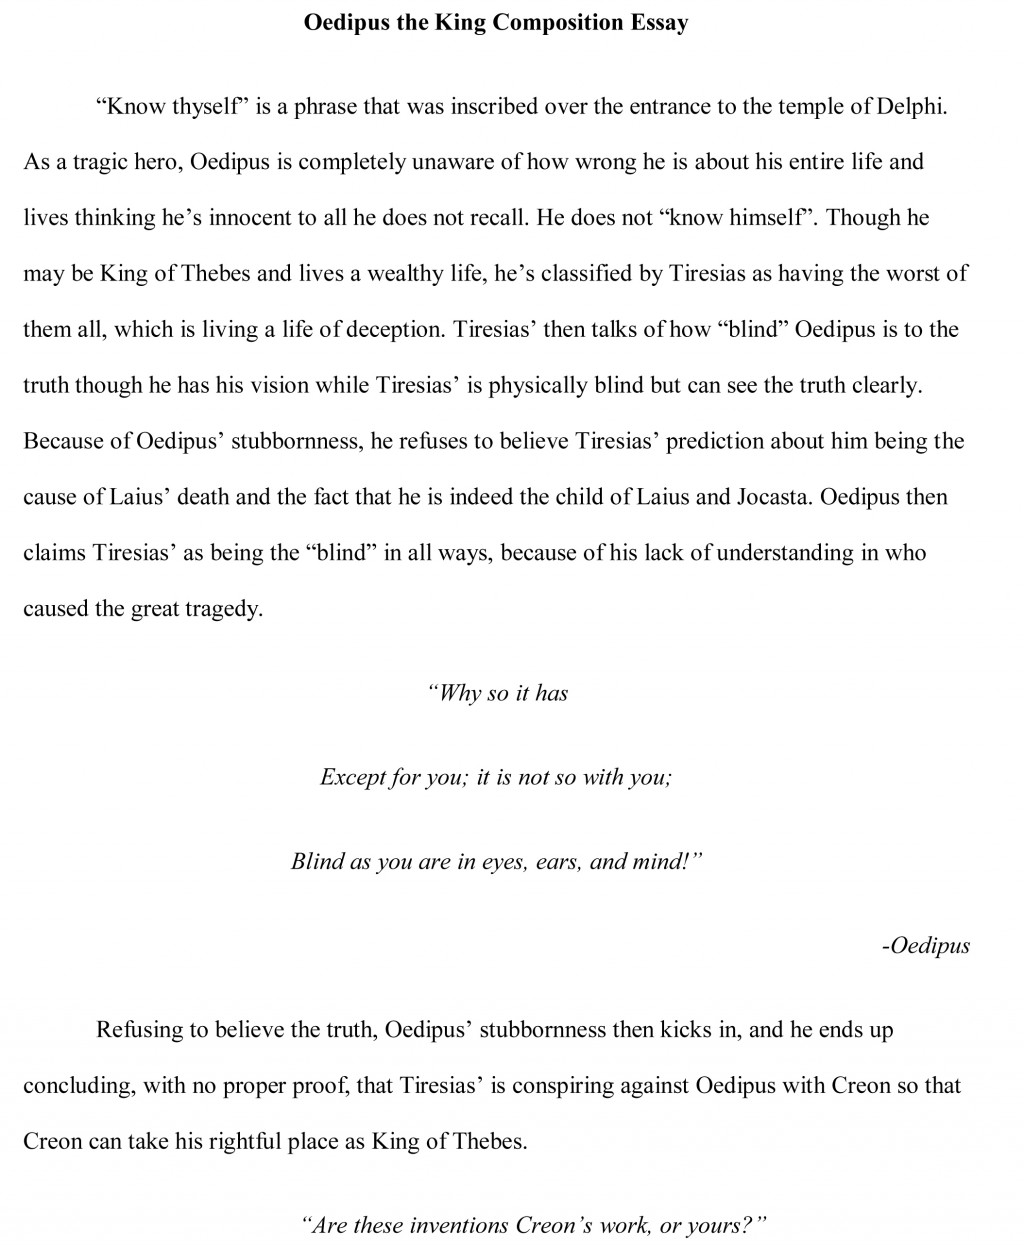 002 Best Essay Topics Example Oedipus Free Surprising Composition For High School Students College Job Interview Large